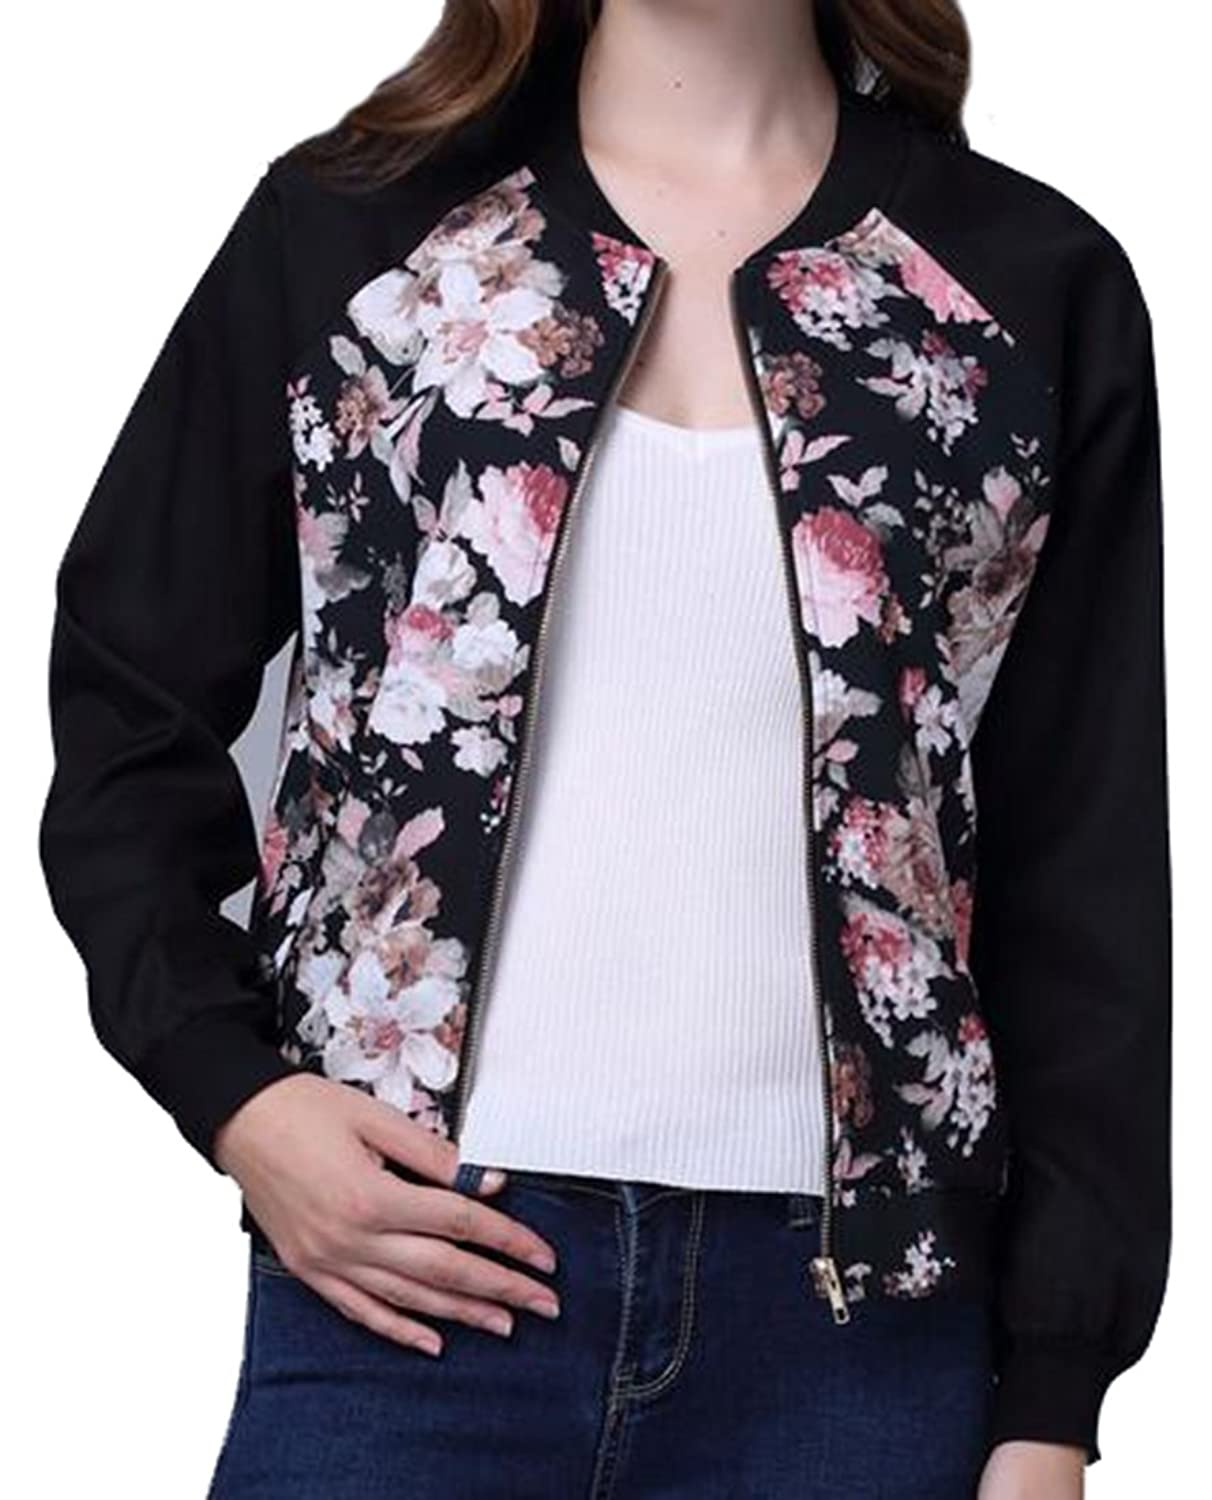 XTX Women's Casual Short Printed Outer Zip-front Jackets